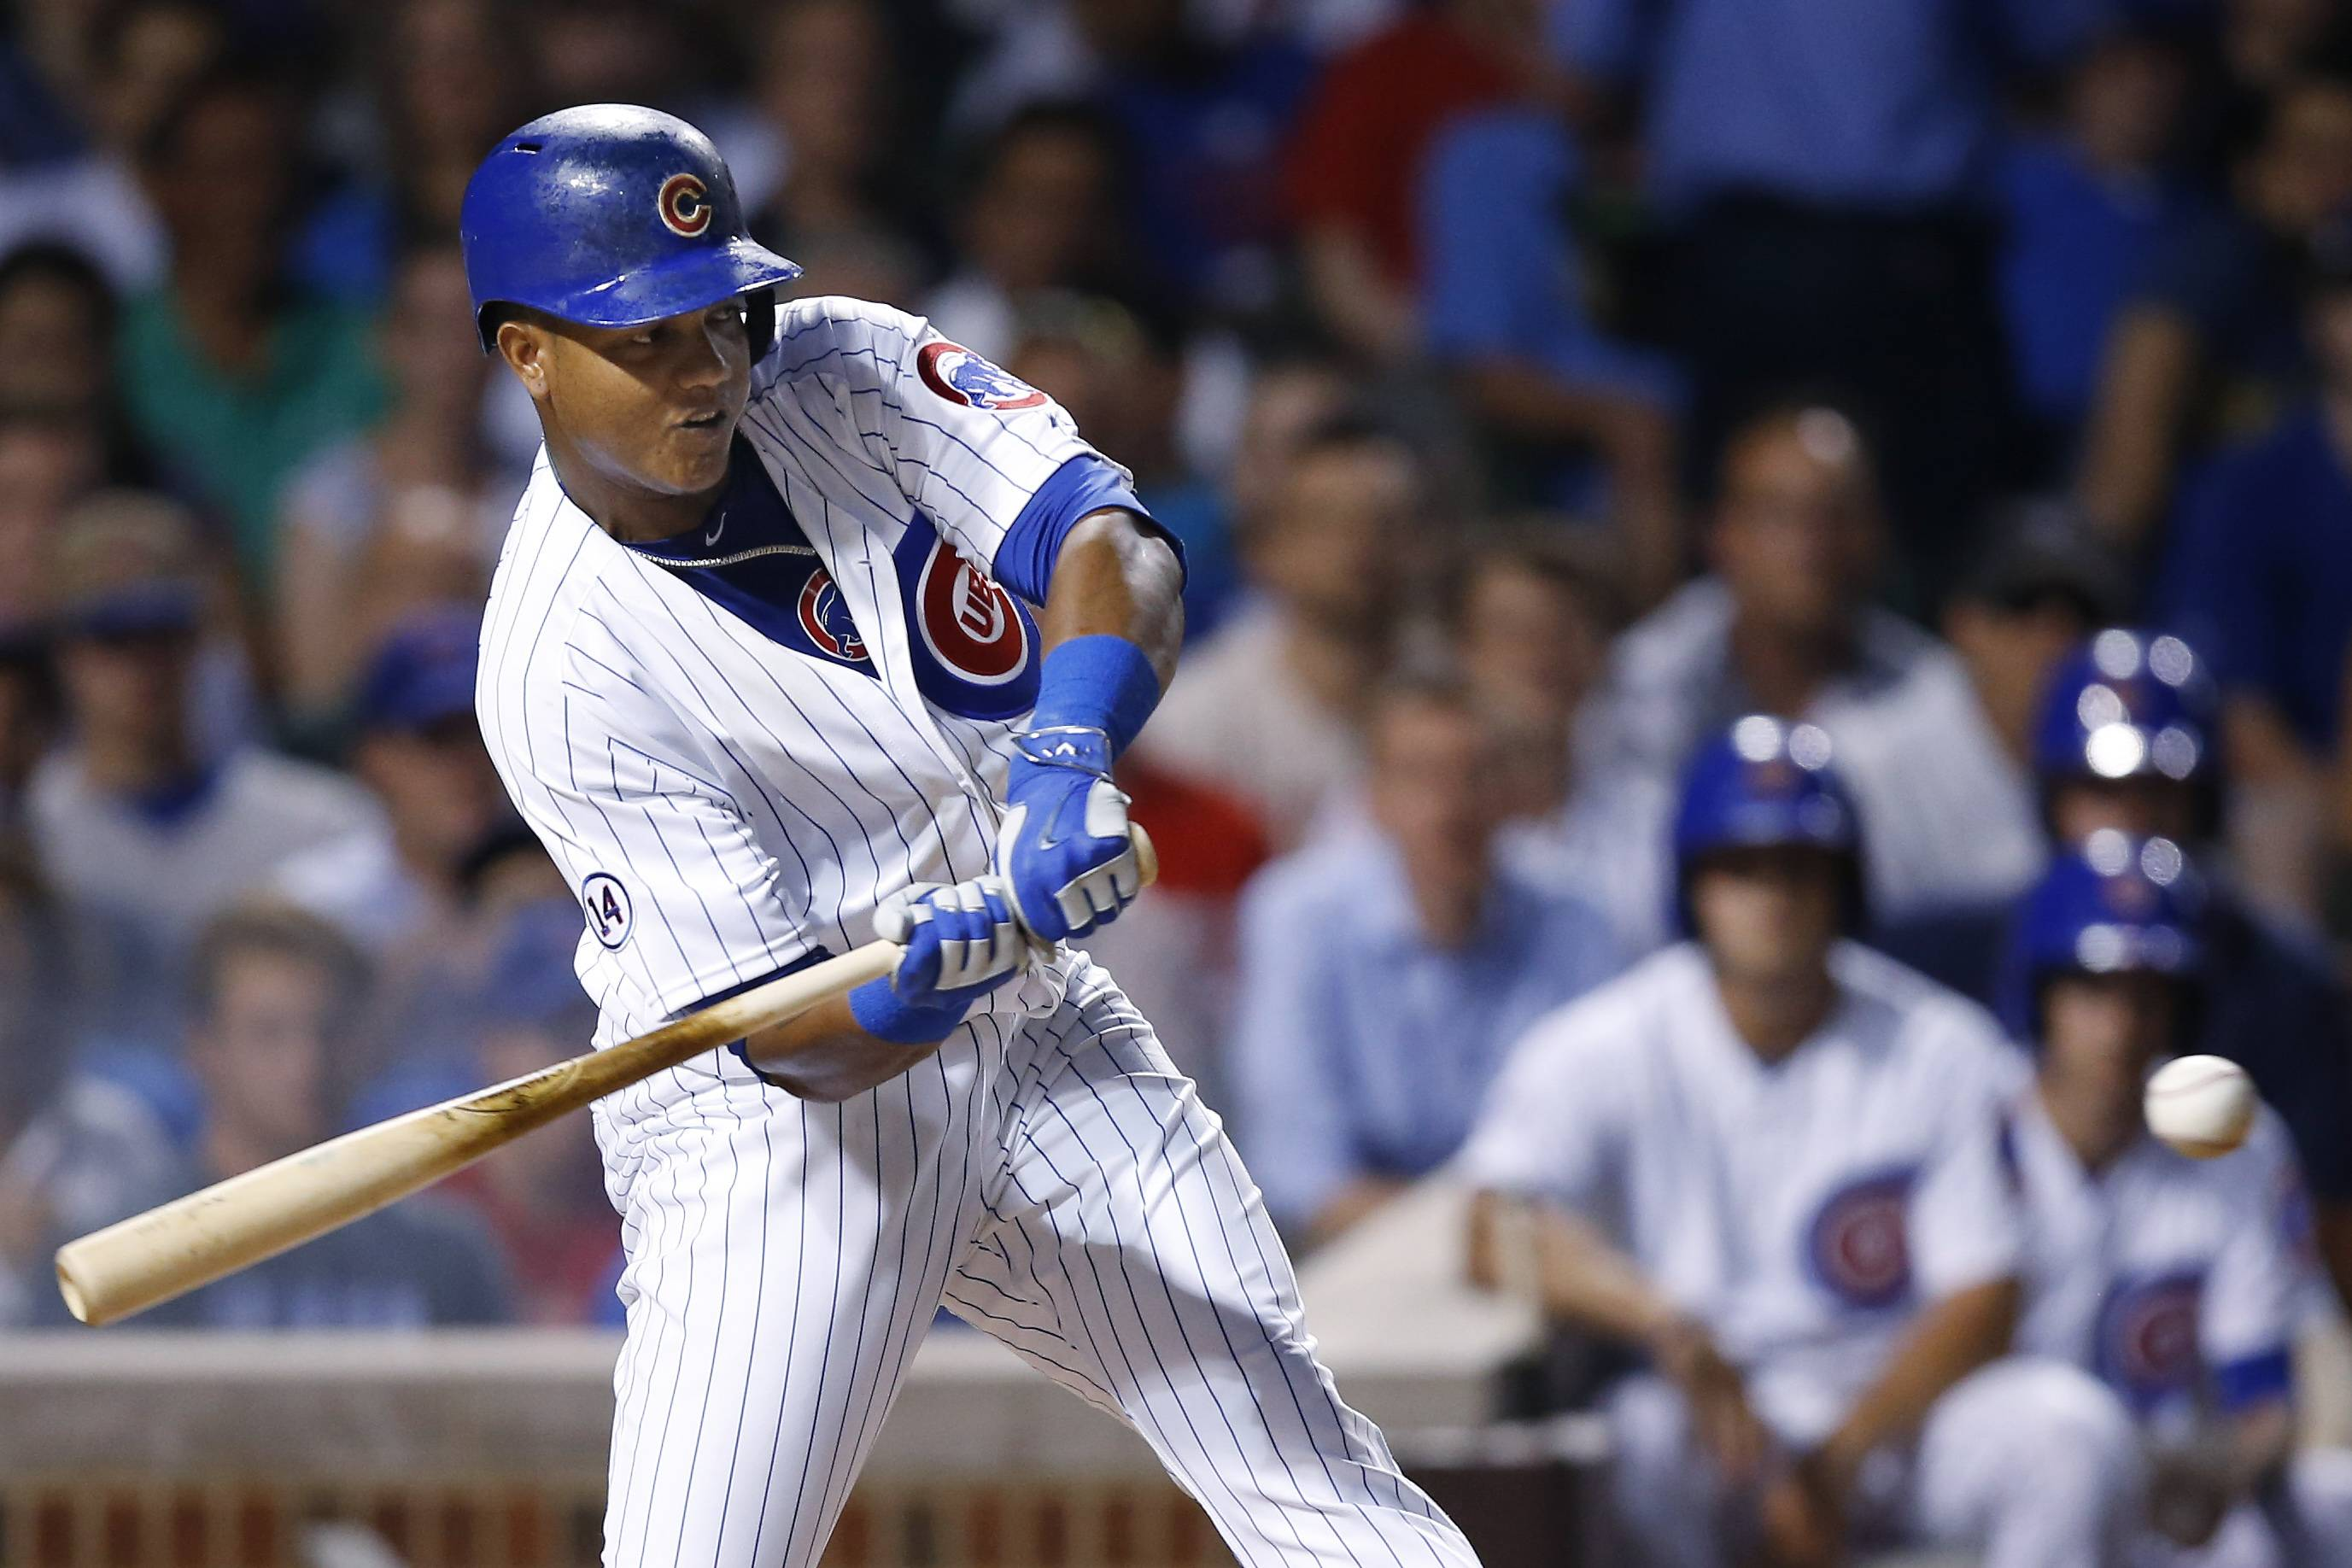 Castro's likely to stay a Chicago Cub